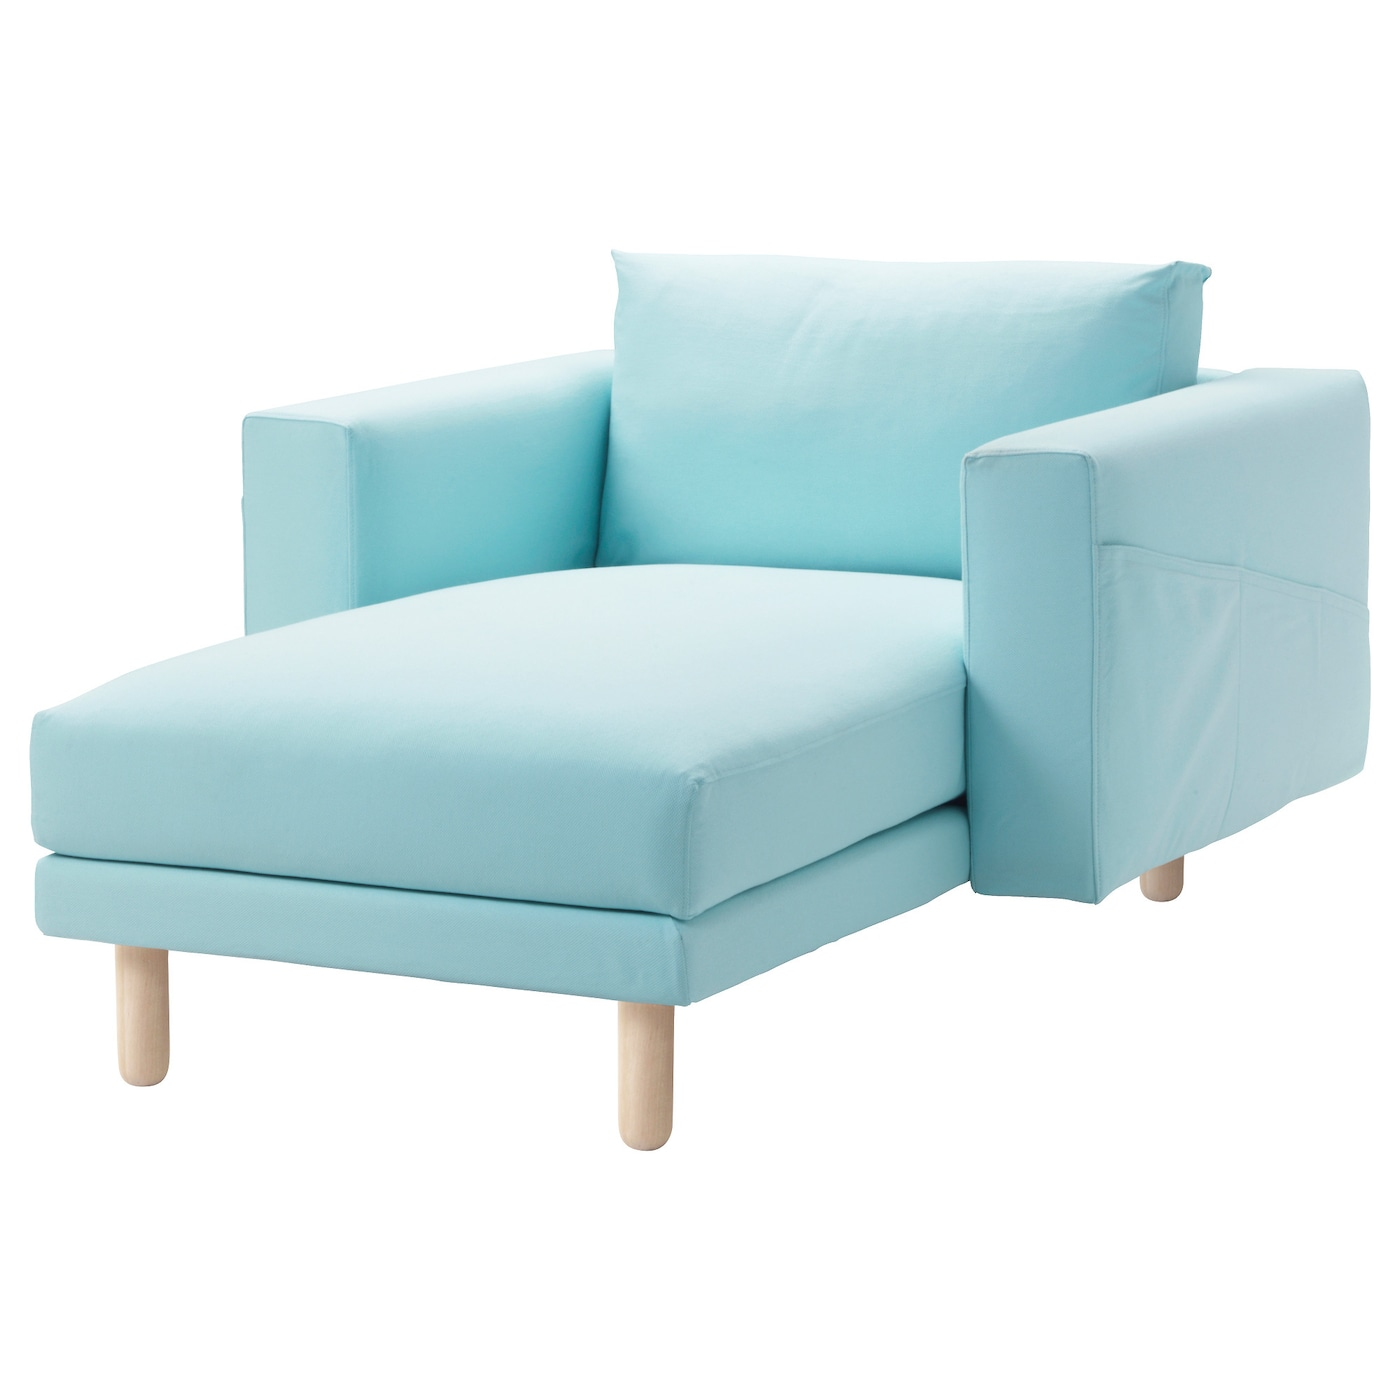 Norsborg cover for chaise longue gr sbo light blue ikea - Chaise en plastique ikea ...